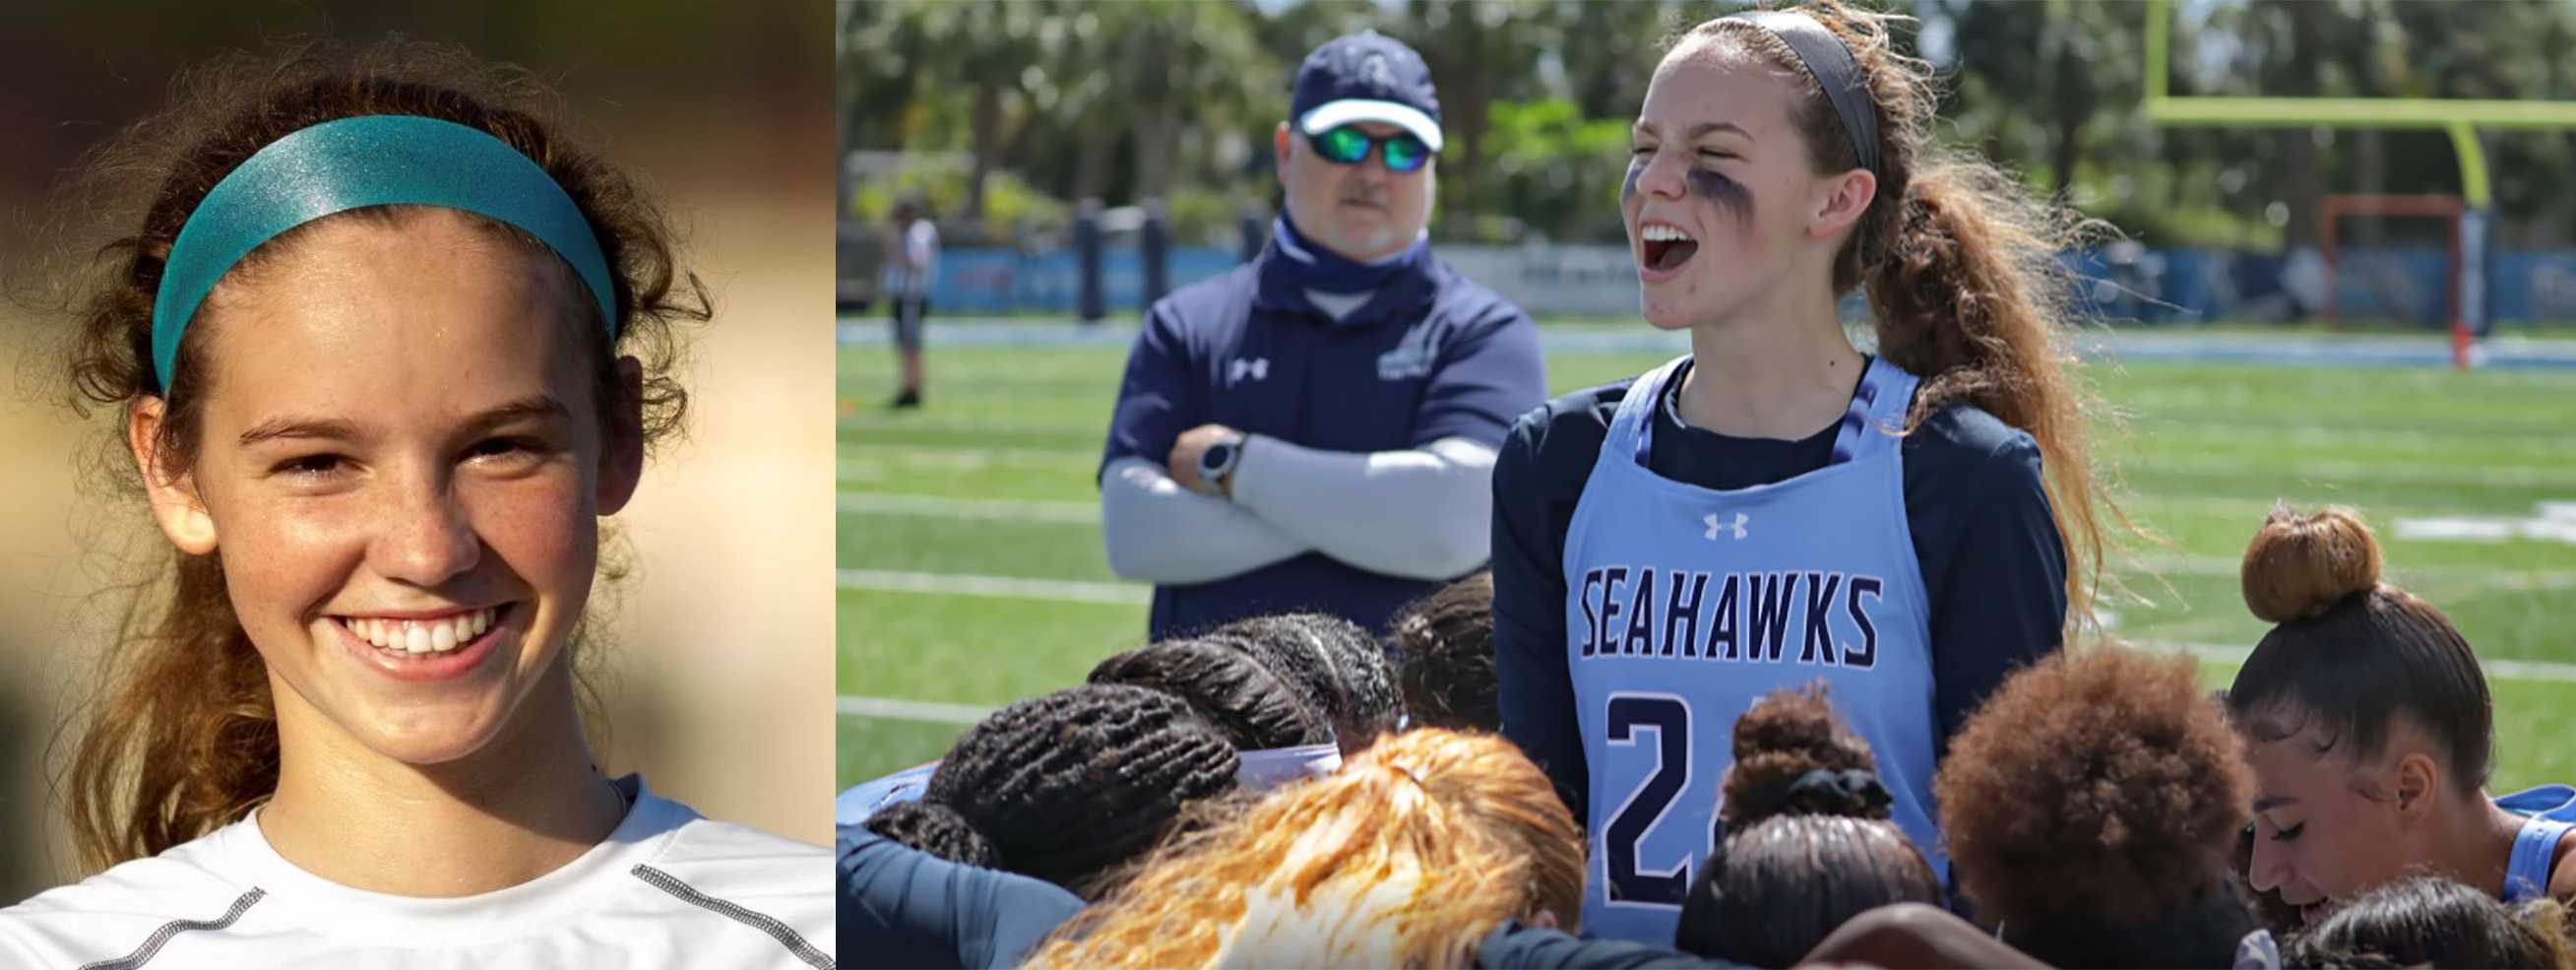 Keiser Flag Football Player is Thankful for Lessons, Both On and Off of the Field